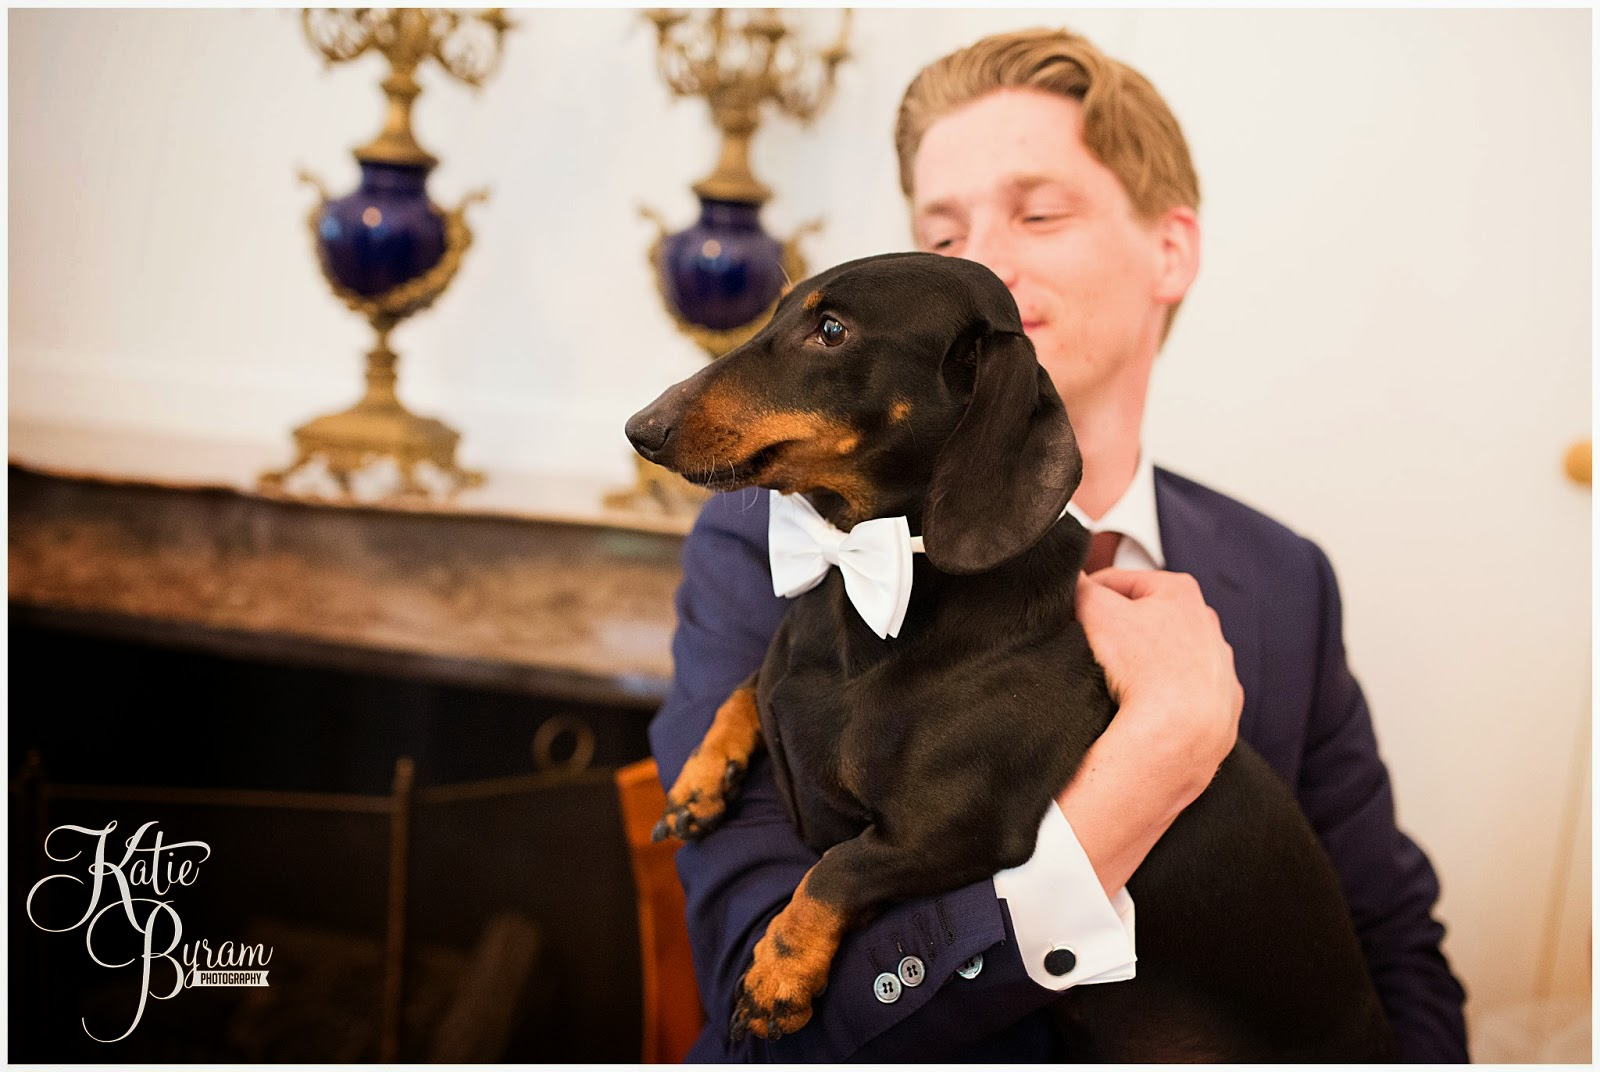 dog at wedding, dog wearing bow tie, katie byram photography, dutch wedding photographer, winschoten wedding, katie byram photography, dutch wedding photographer, winschoten wedding, netherlands wedding, destination wedding photographer, netherlands wedding, destination wedding photographer, holland wedding, papa di grazzi